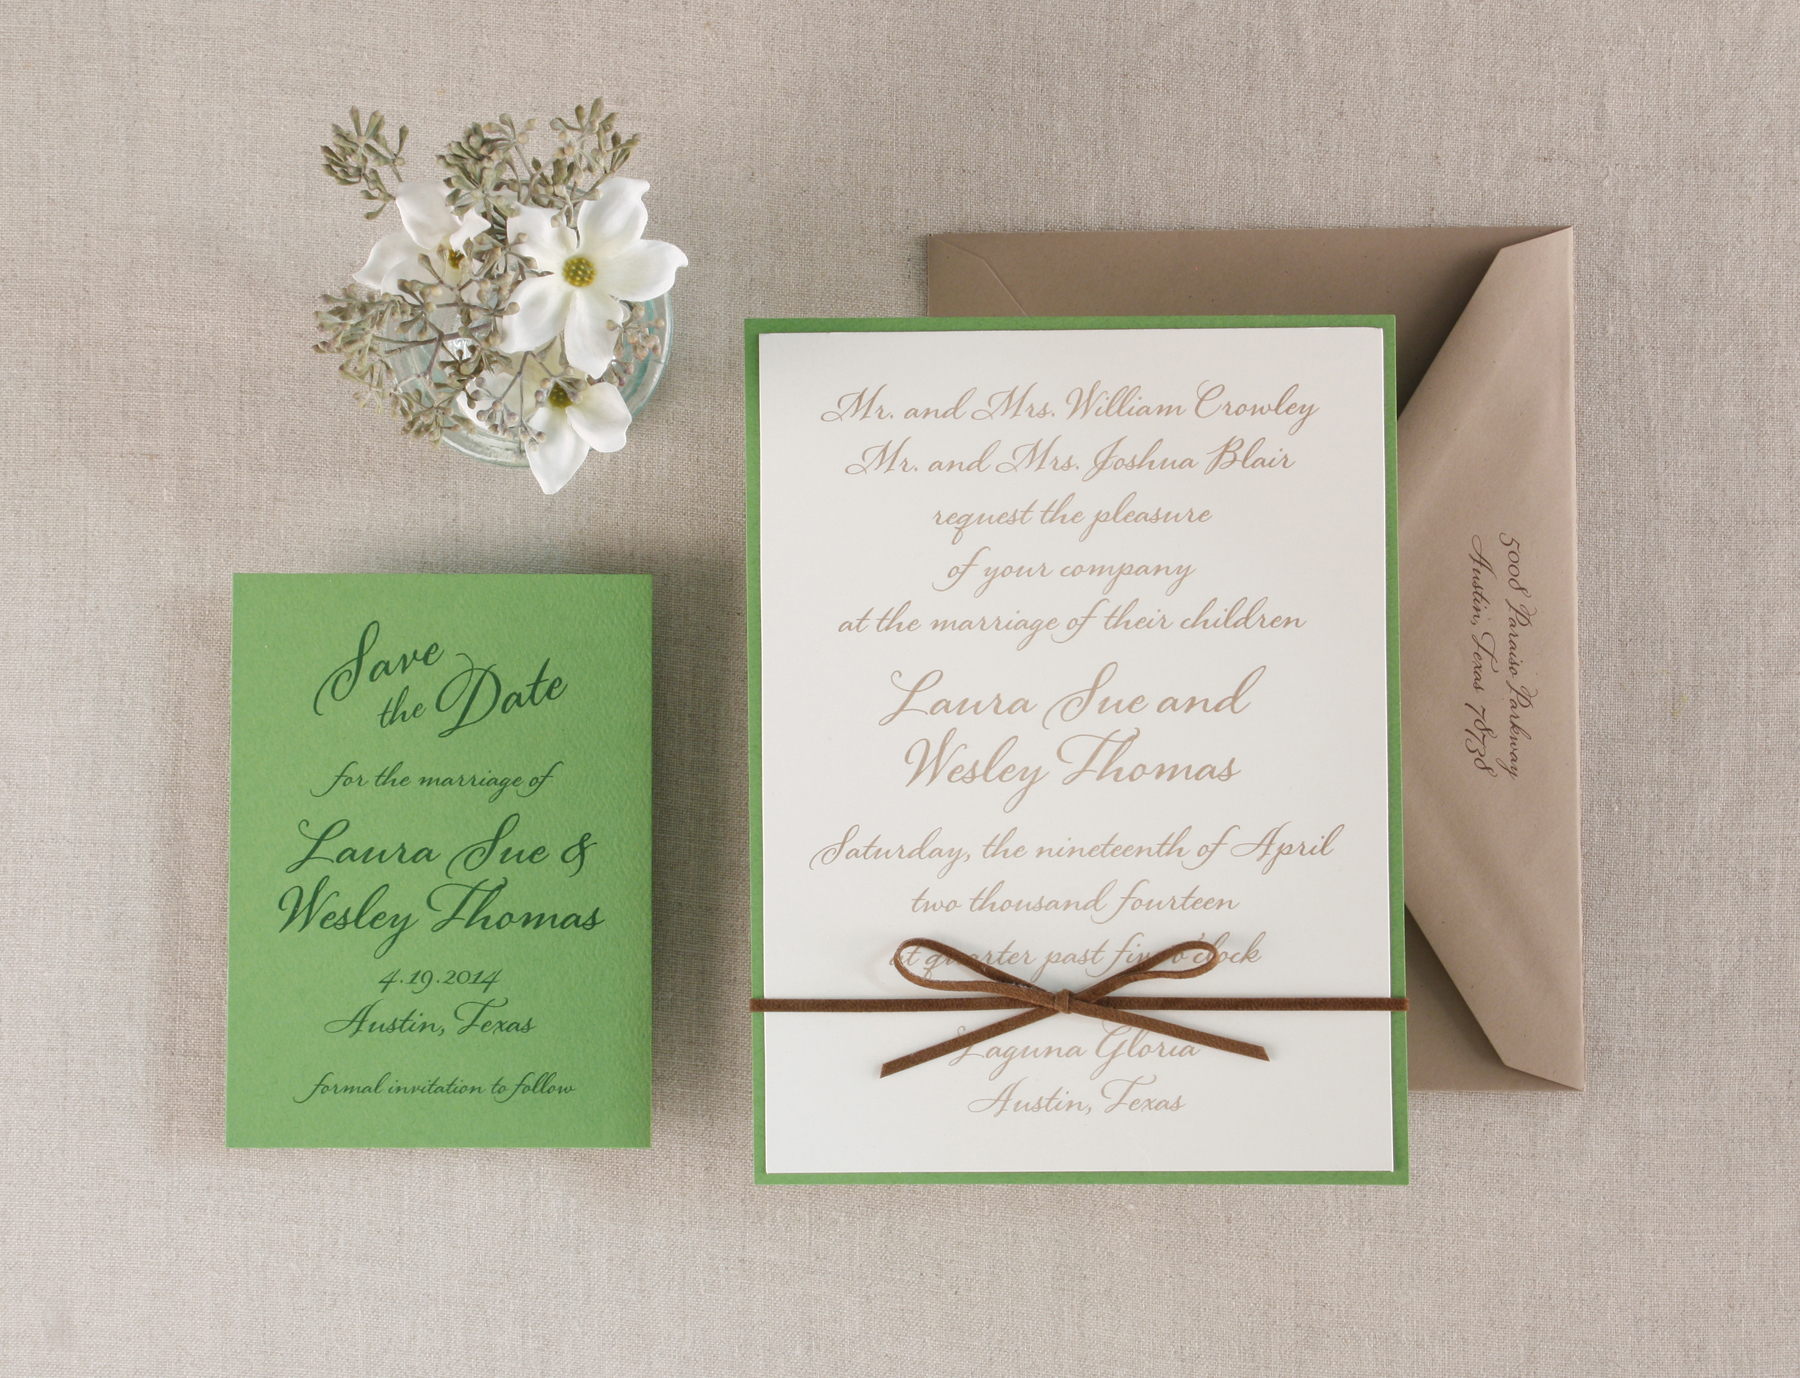 Bridal Shower Invitations Bridal Shower Invitations At Target – Target Registry Cards for Invitations